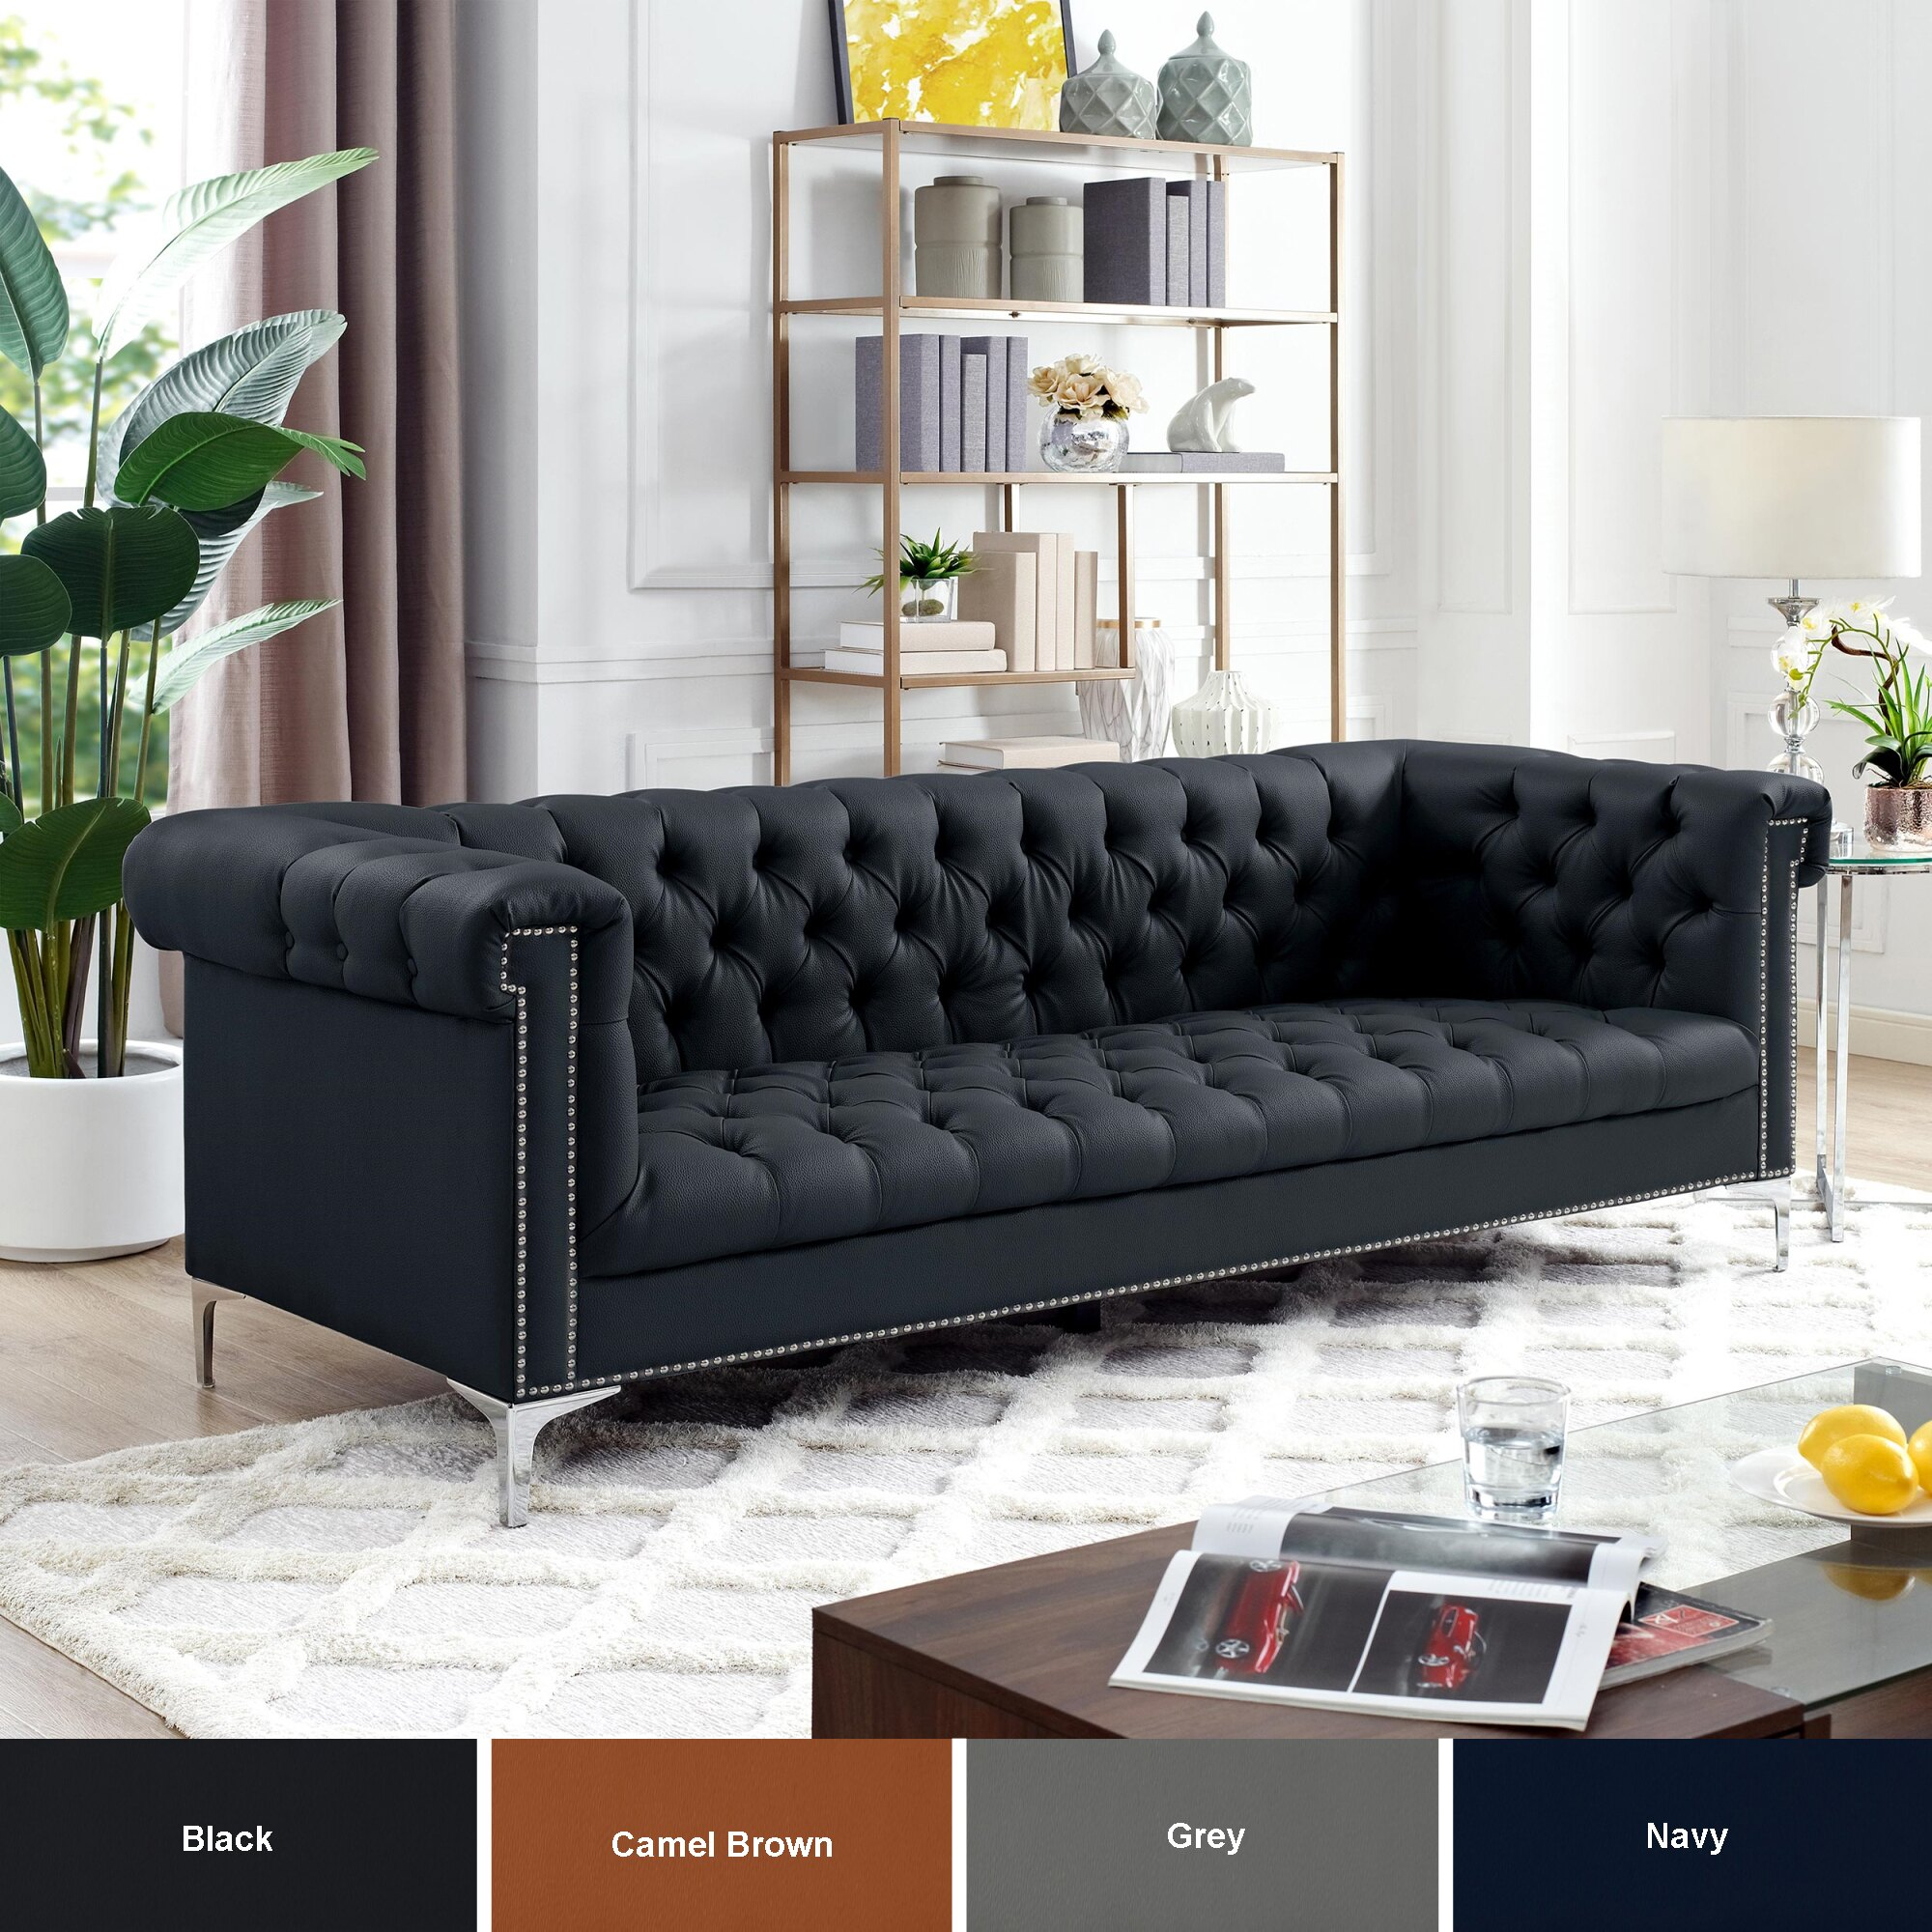 Warwick Leather Chesterfield Sofa - Silver Metal Legs | Button Tufted |  Nailhead Trim | Modern | Livingroom | Inspired Home